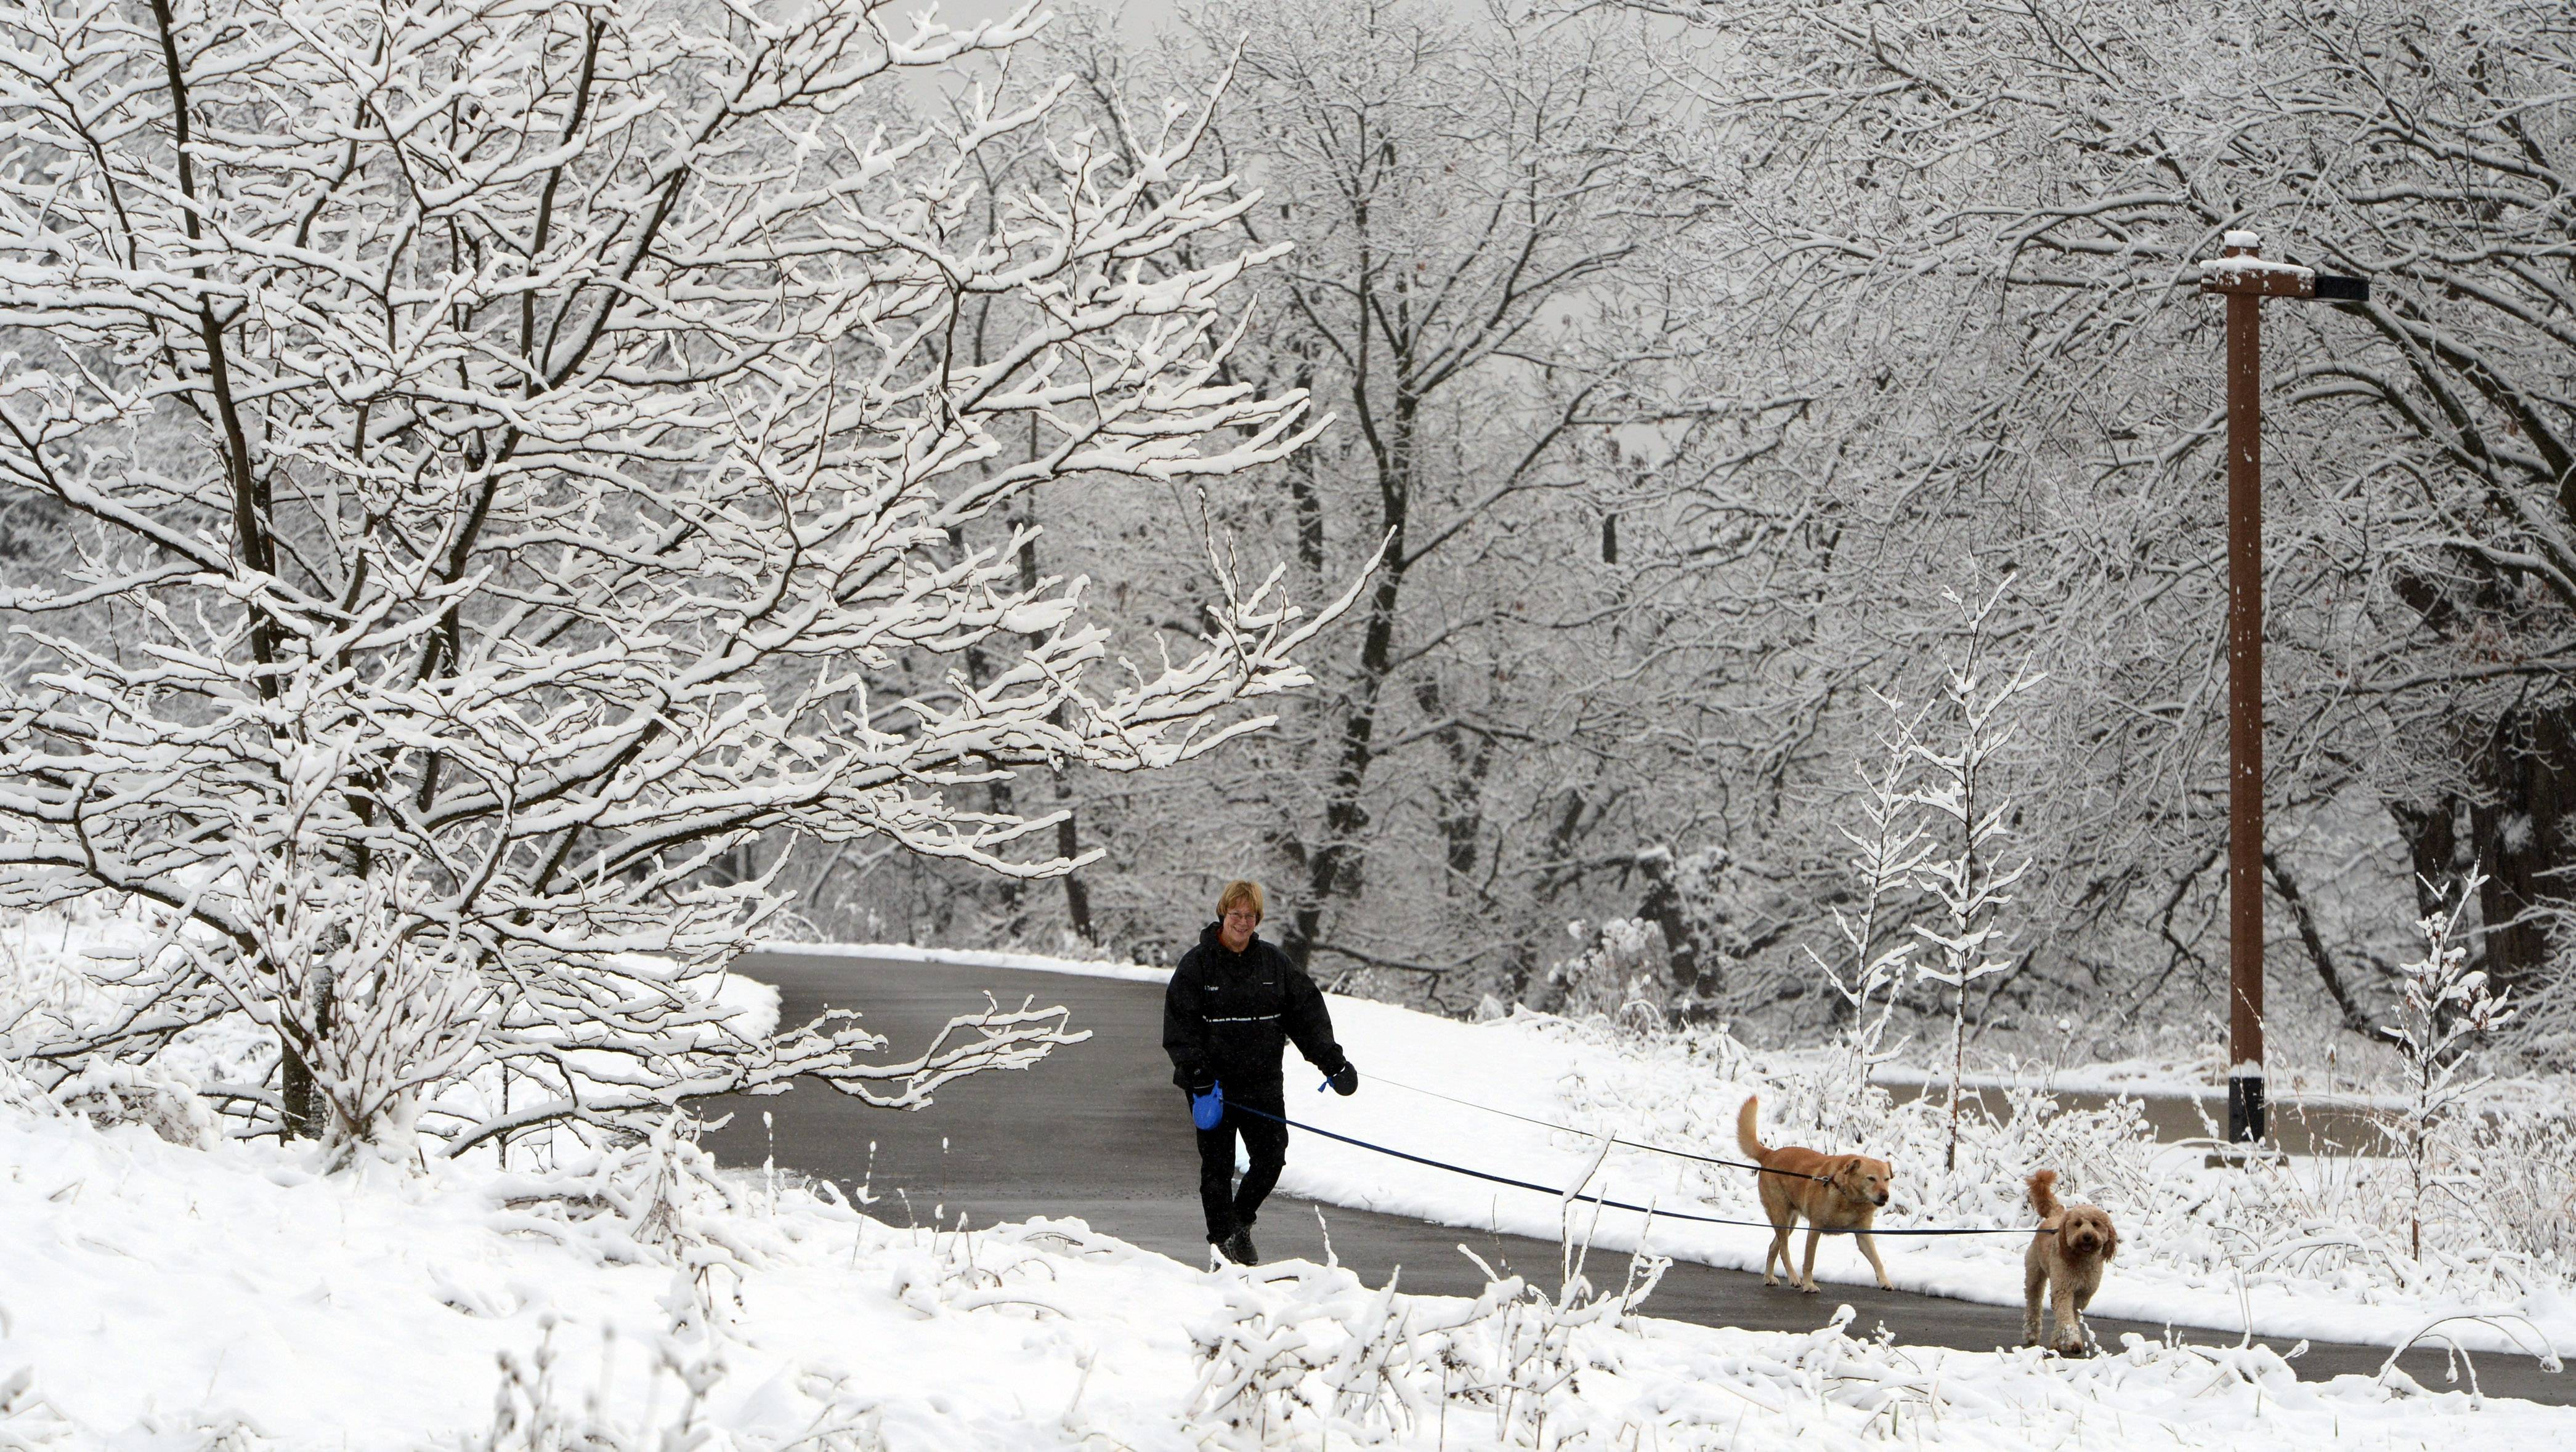 Sandy Stoub of Wauconda enjoys a snowy walk with her dogs last December in the Fox River Preserve near Island Lake. This scene could be repeated Sunday, as forecasters predict accumulations of 2 to 4 inches.